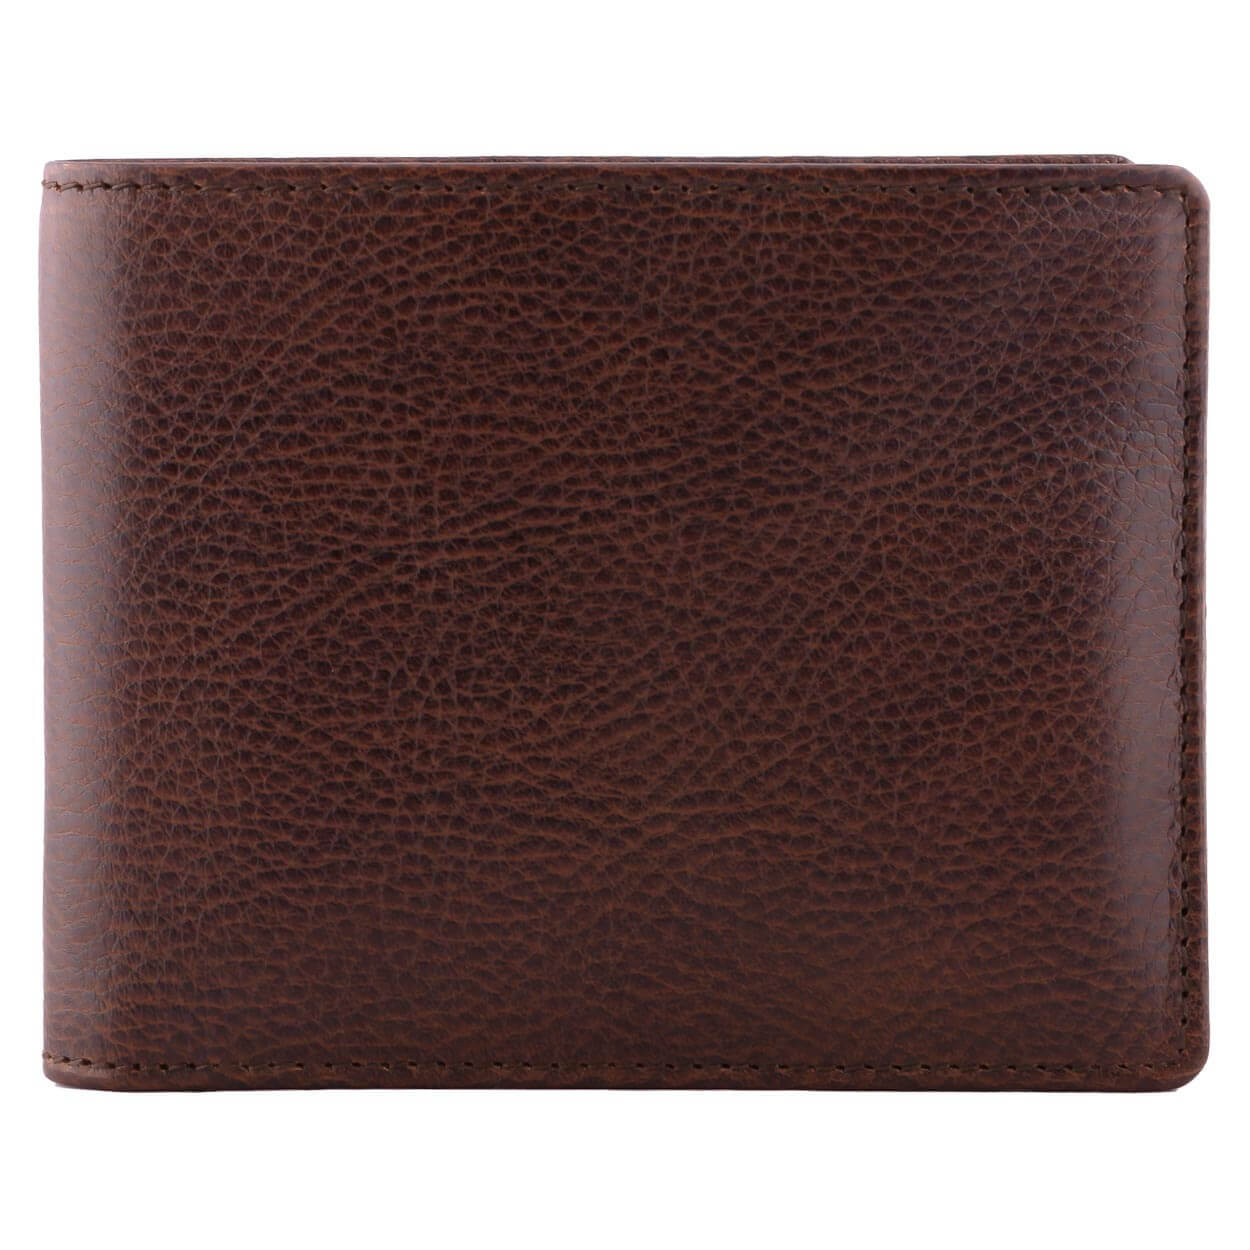 DiLoro Men's Slim Bifold Leather Wallet Gemini Brown - Front View